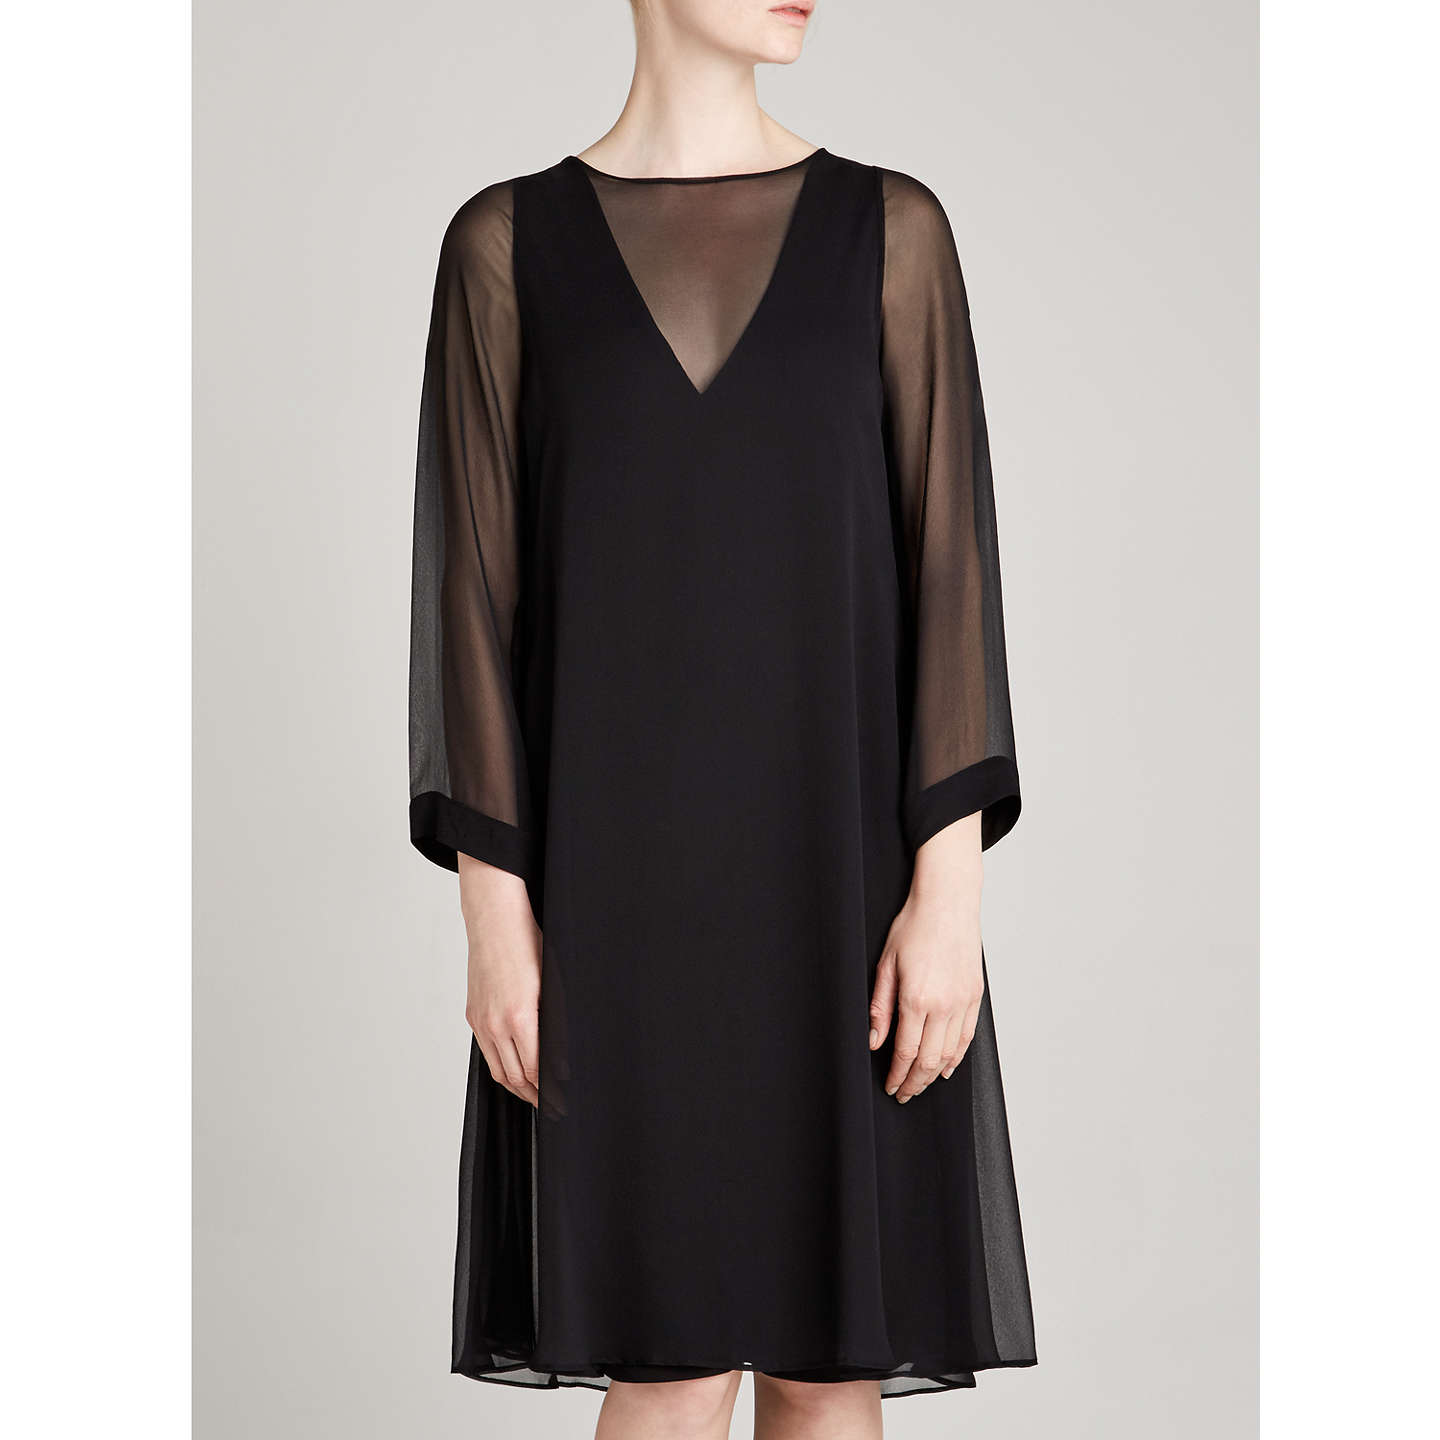 BuyWinser London Georgette Silk Layered Dress, Black, 8 Online at johnlewis.com